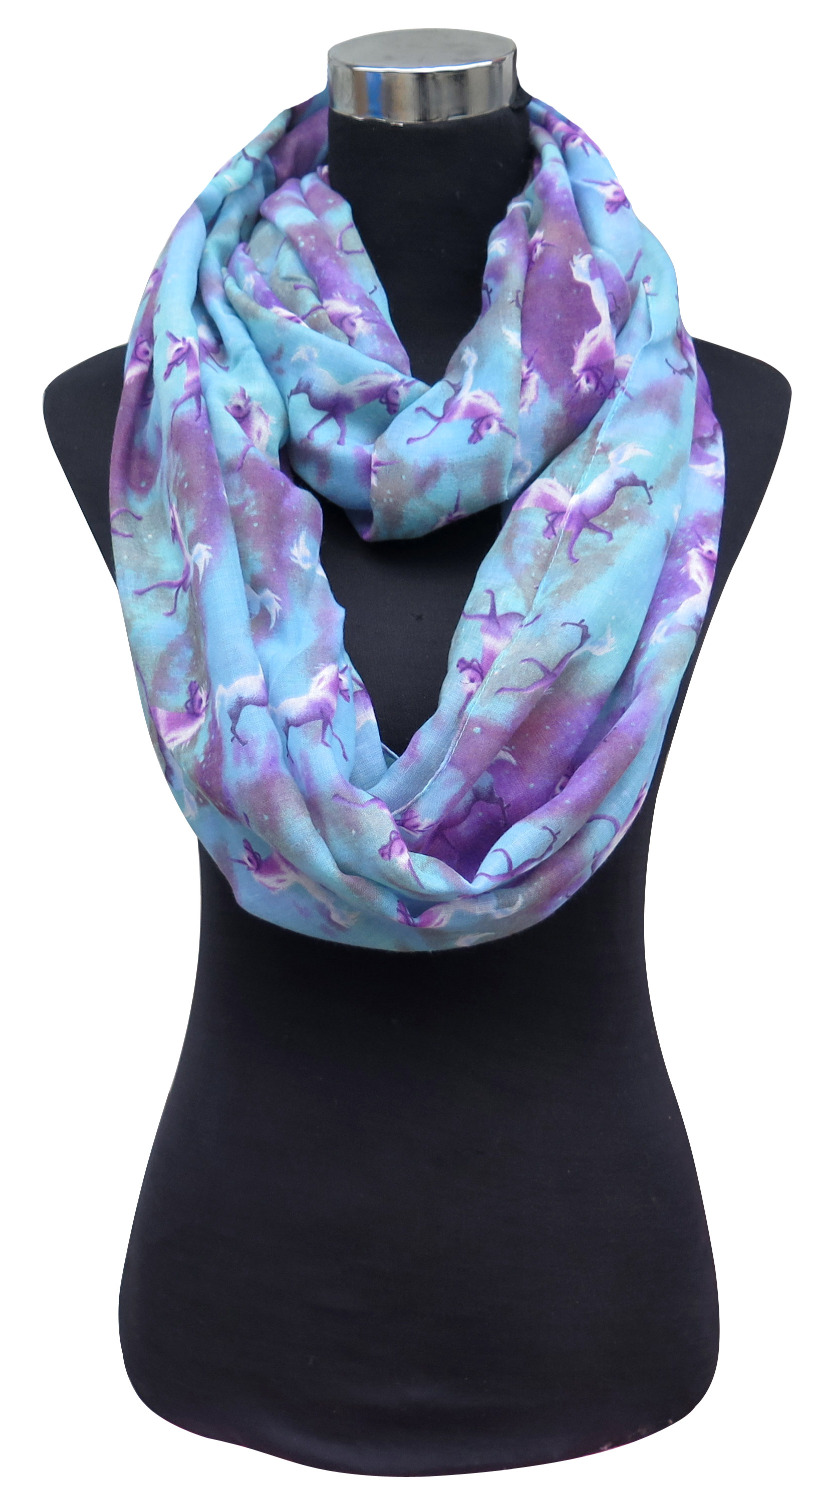 10pcs lot Unicorn and Galaxy Print Women s Infinity Loop Scarf Snood Free Shipping